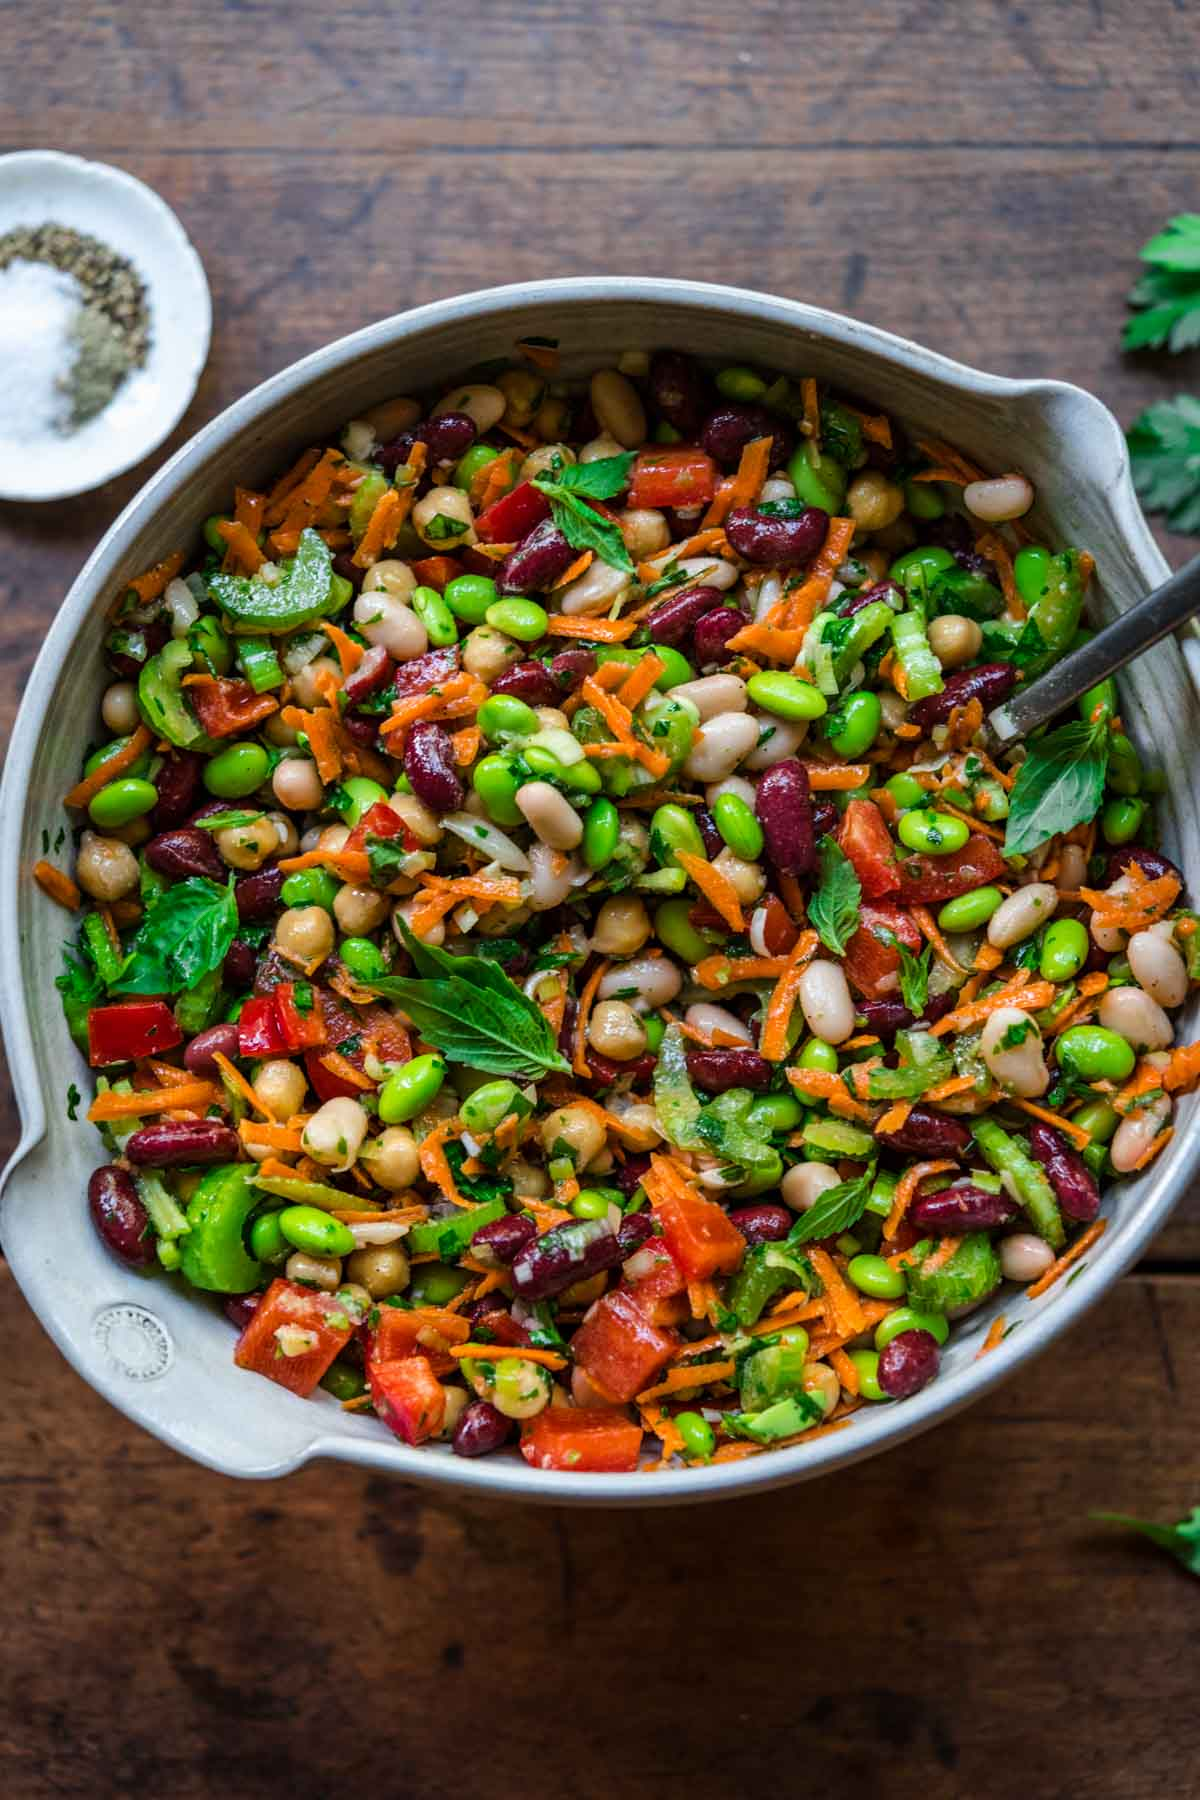 close up view of four bean salad in a large white mixing bowl on wood table.